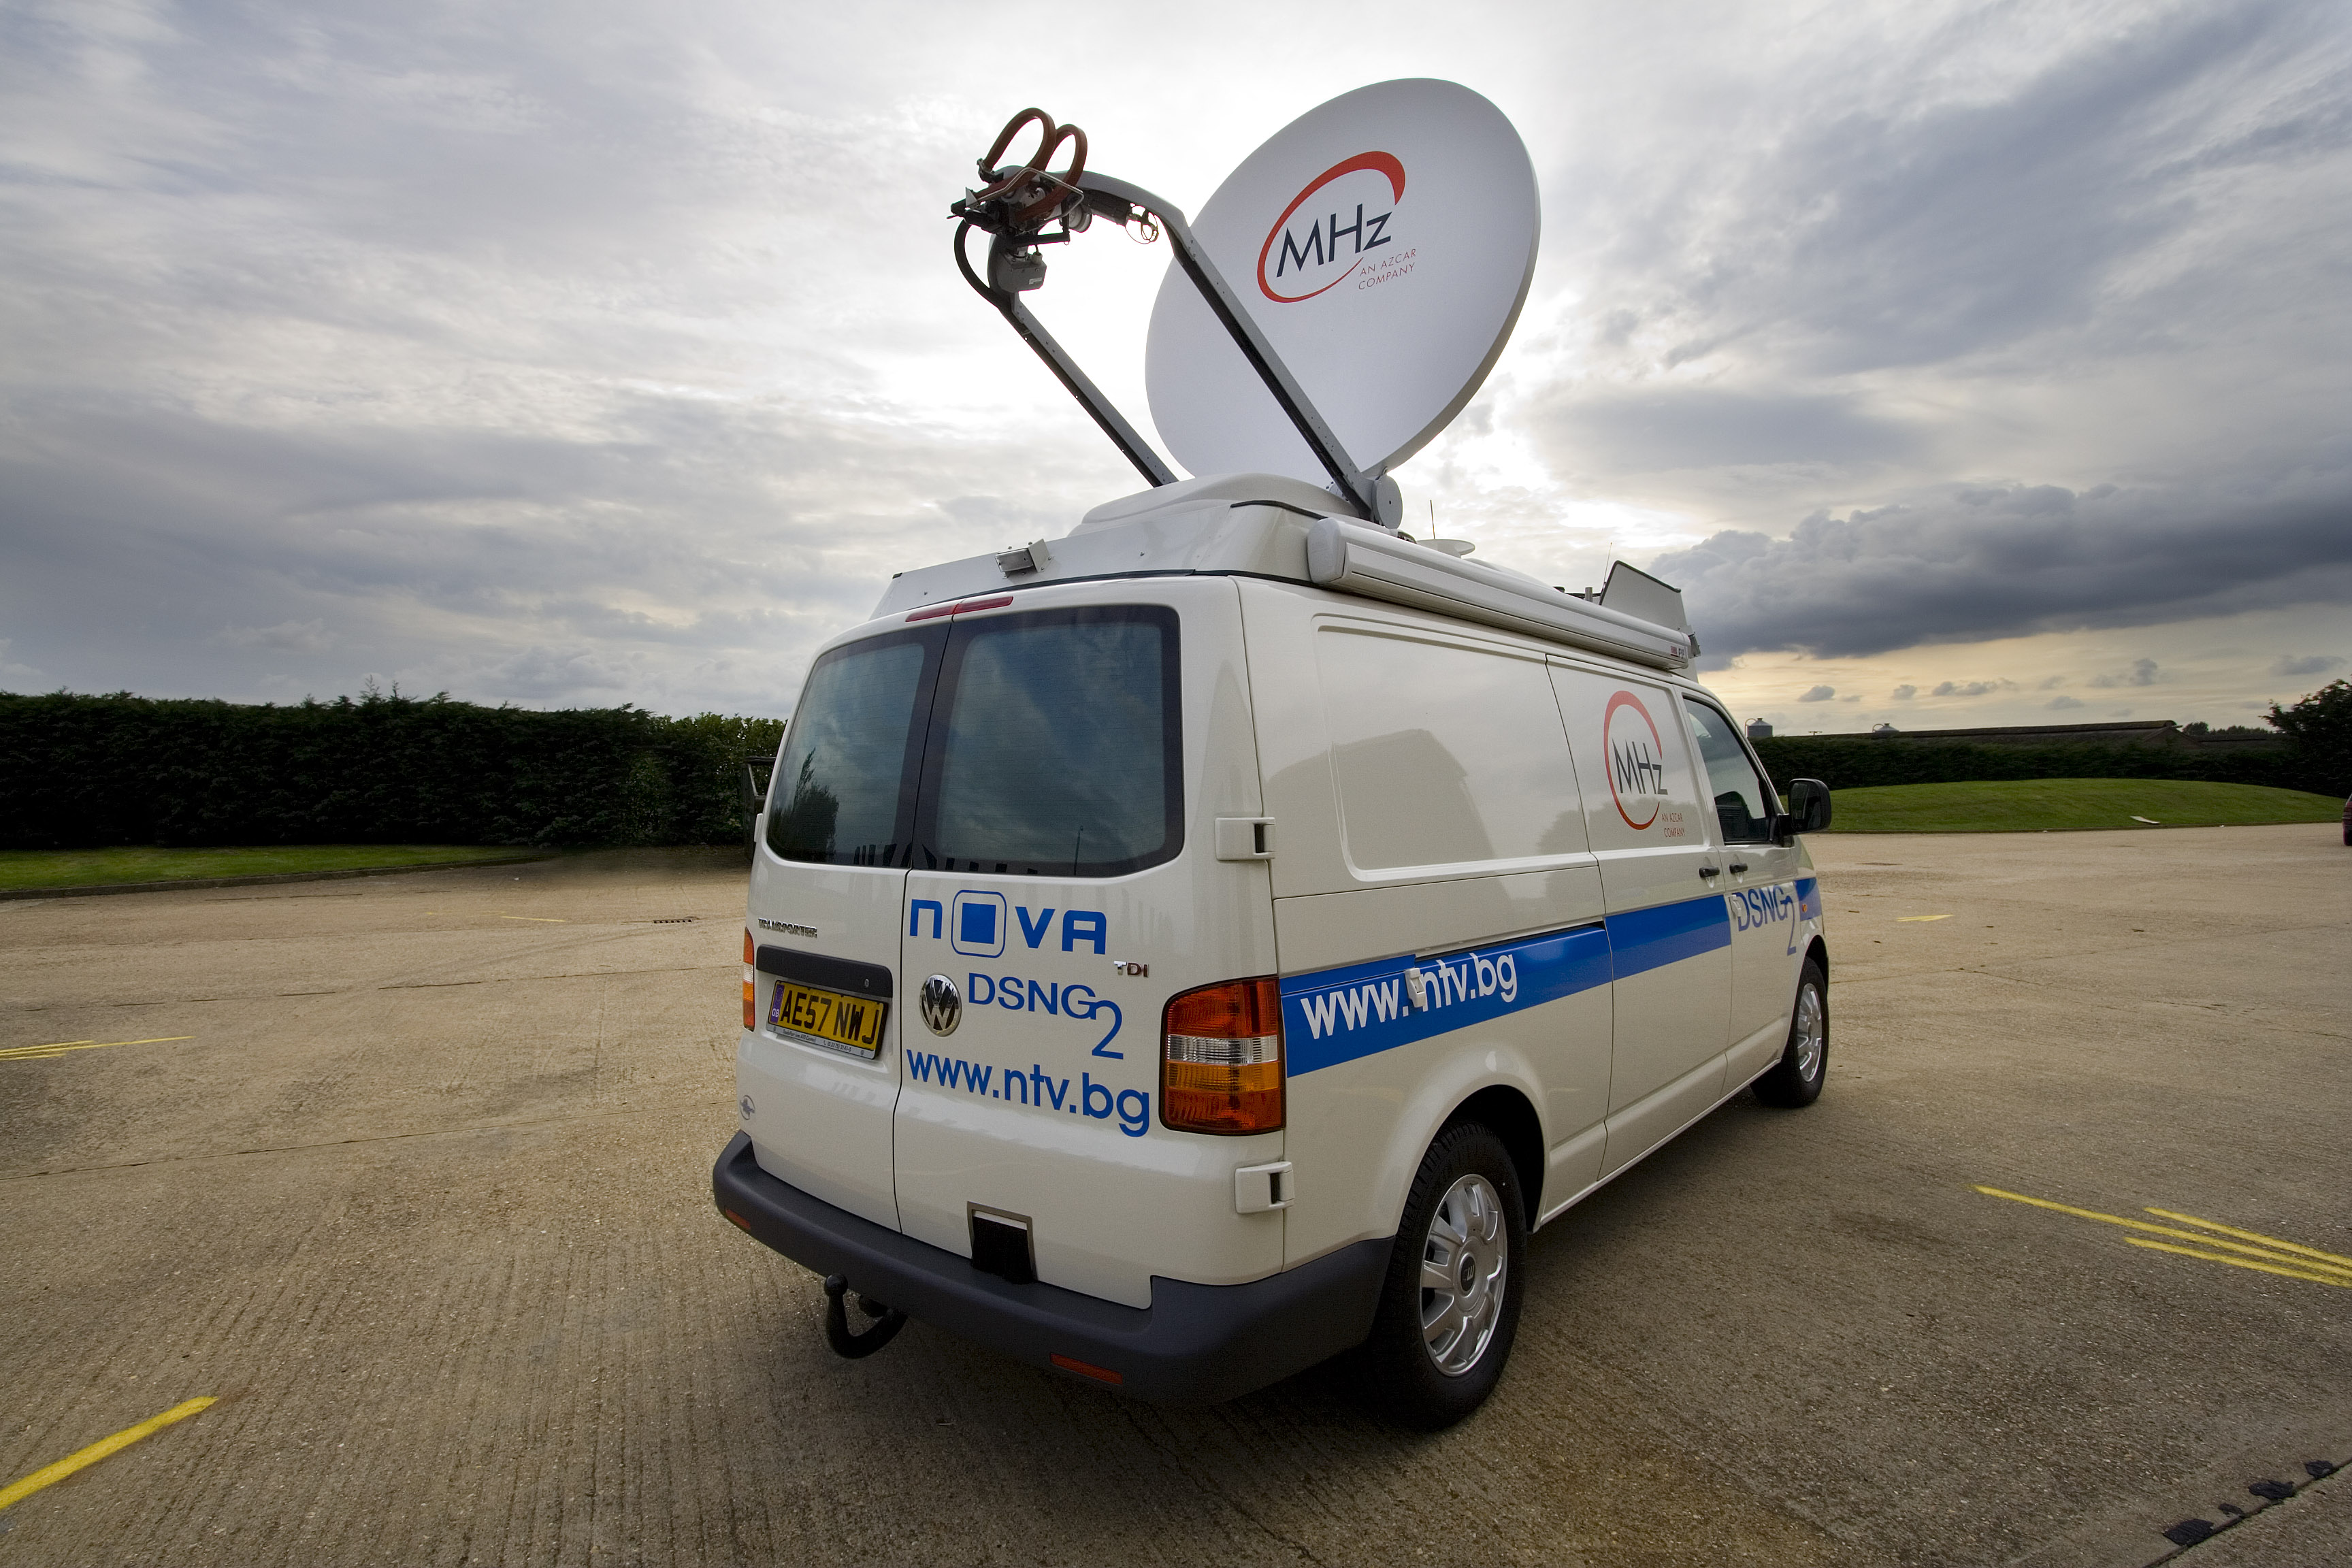 OB Truck Photos 8.jpg - Outside Broadcast Vehicle, Ely, Cambridgeshire, UK, September 2008